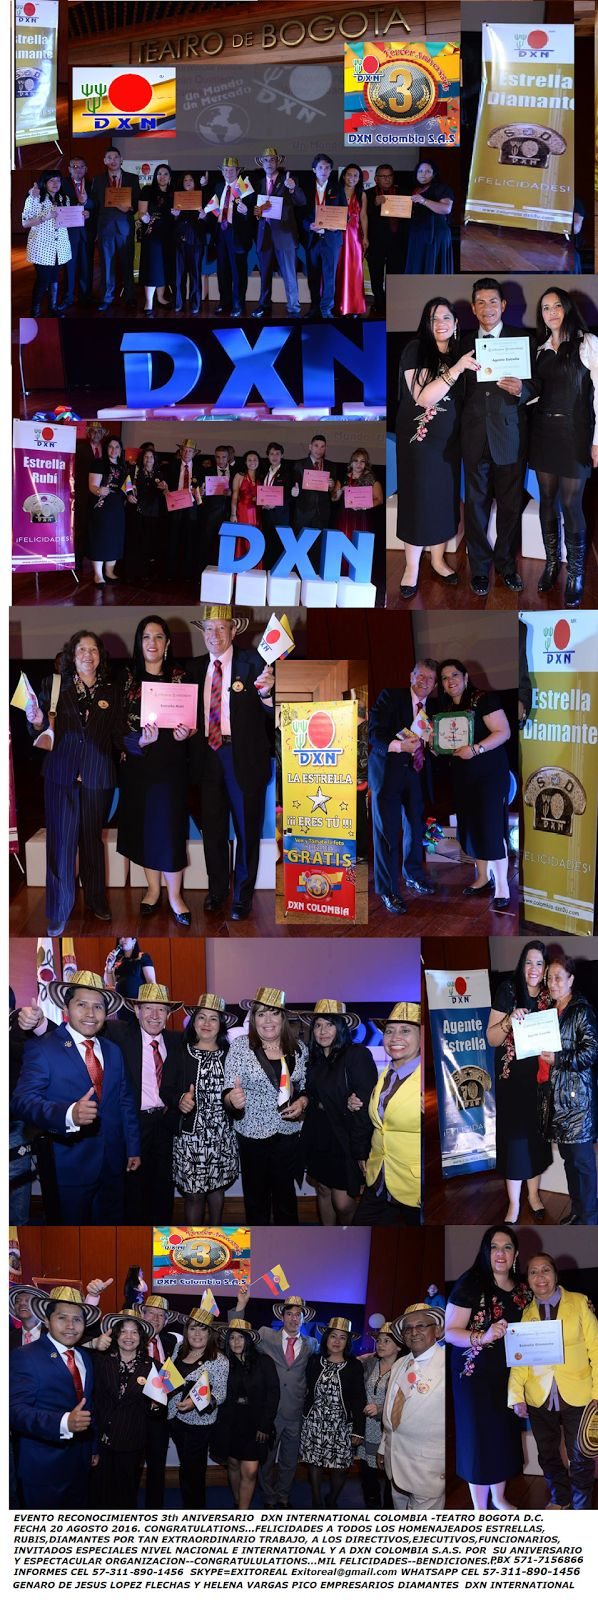 DXN HOLDINGS GLOBAL THE GANODERMA COMPANY.BUSCAMOS EMPRENDEDORES.GANE DINERO YA: DXN HOLDINGS GLOBAL THE GANODERMA COMPANY.BUSCAMOS...